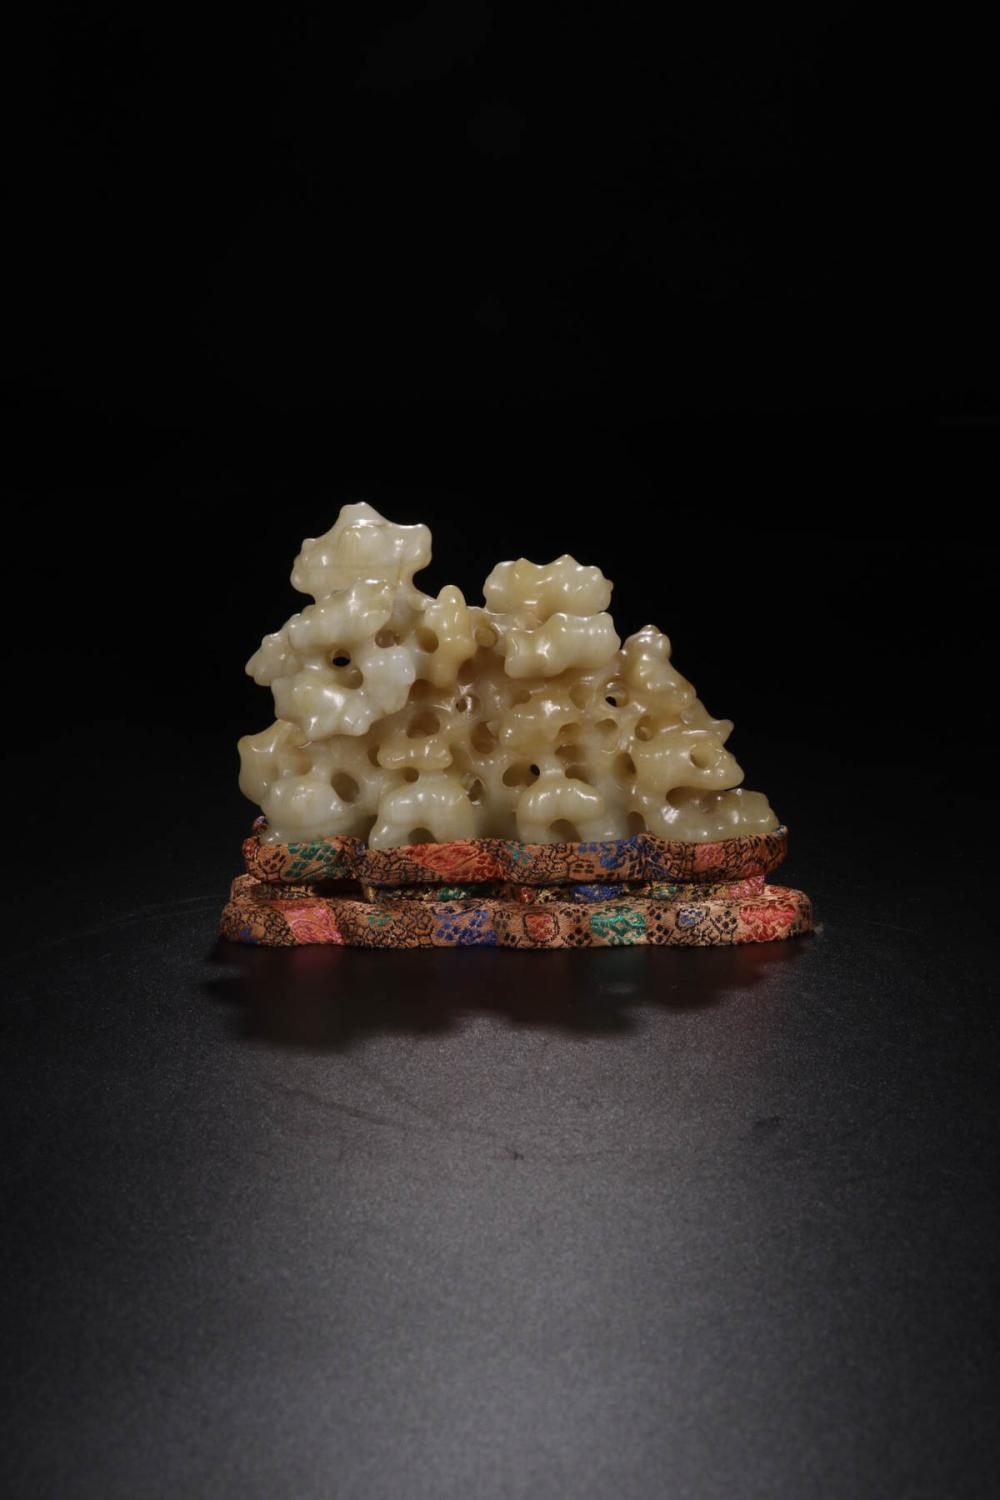 A HETIAN JADE MOUNTAIN SHAPE CARVED ORNAMENT